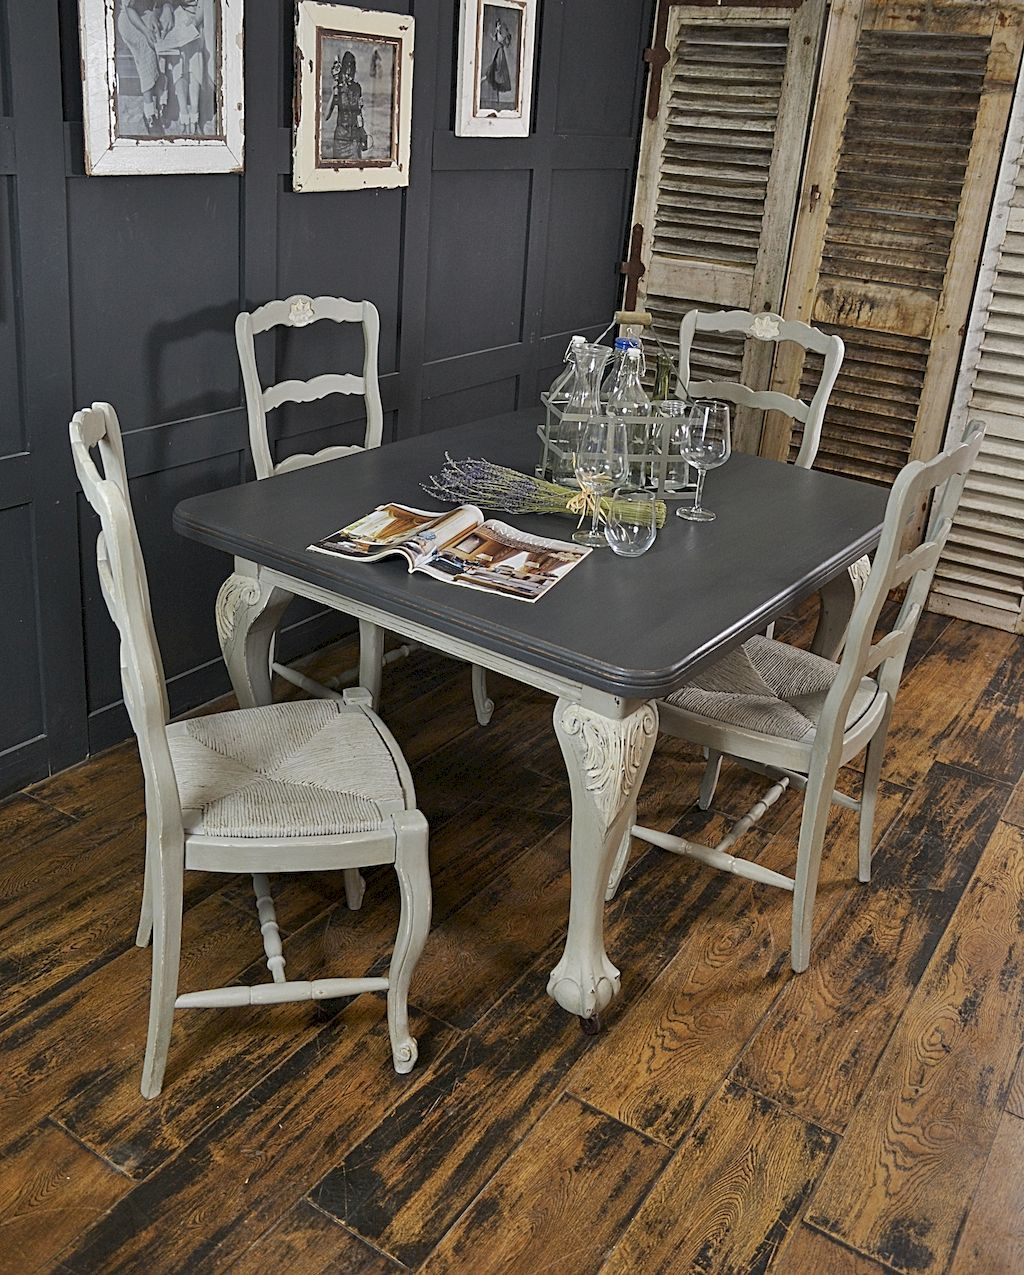 75 Vintage Dining Table Design Ideas DIY